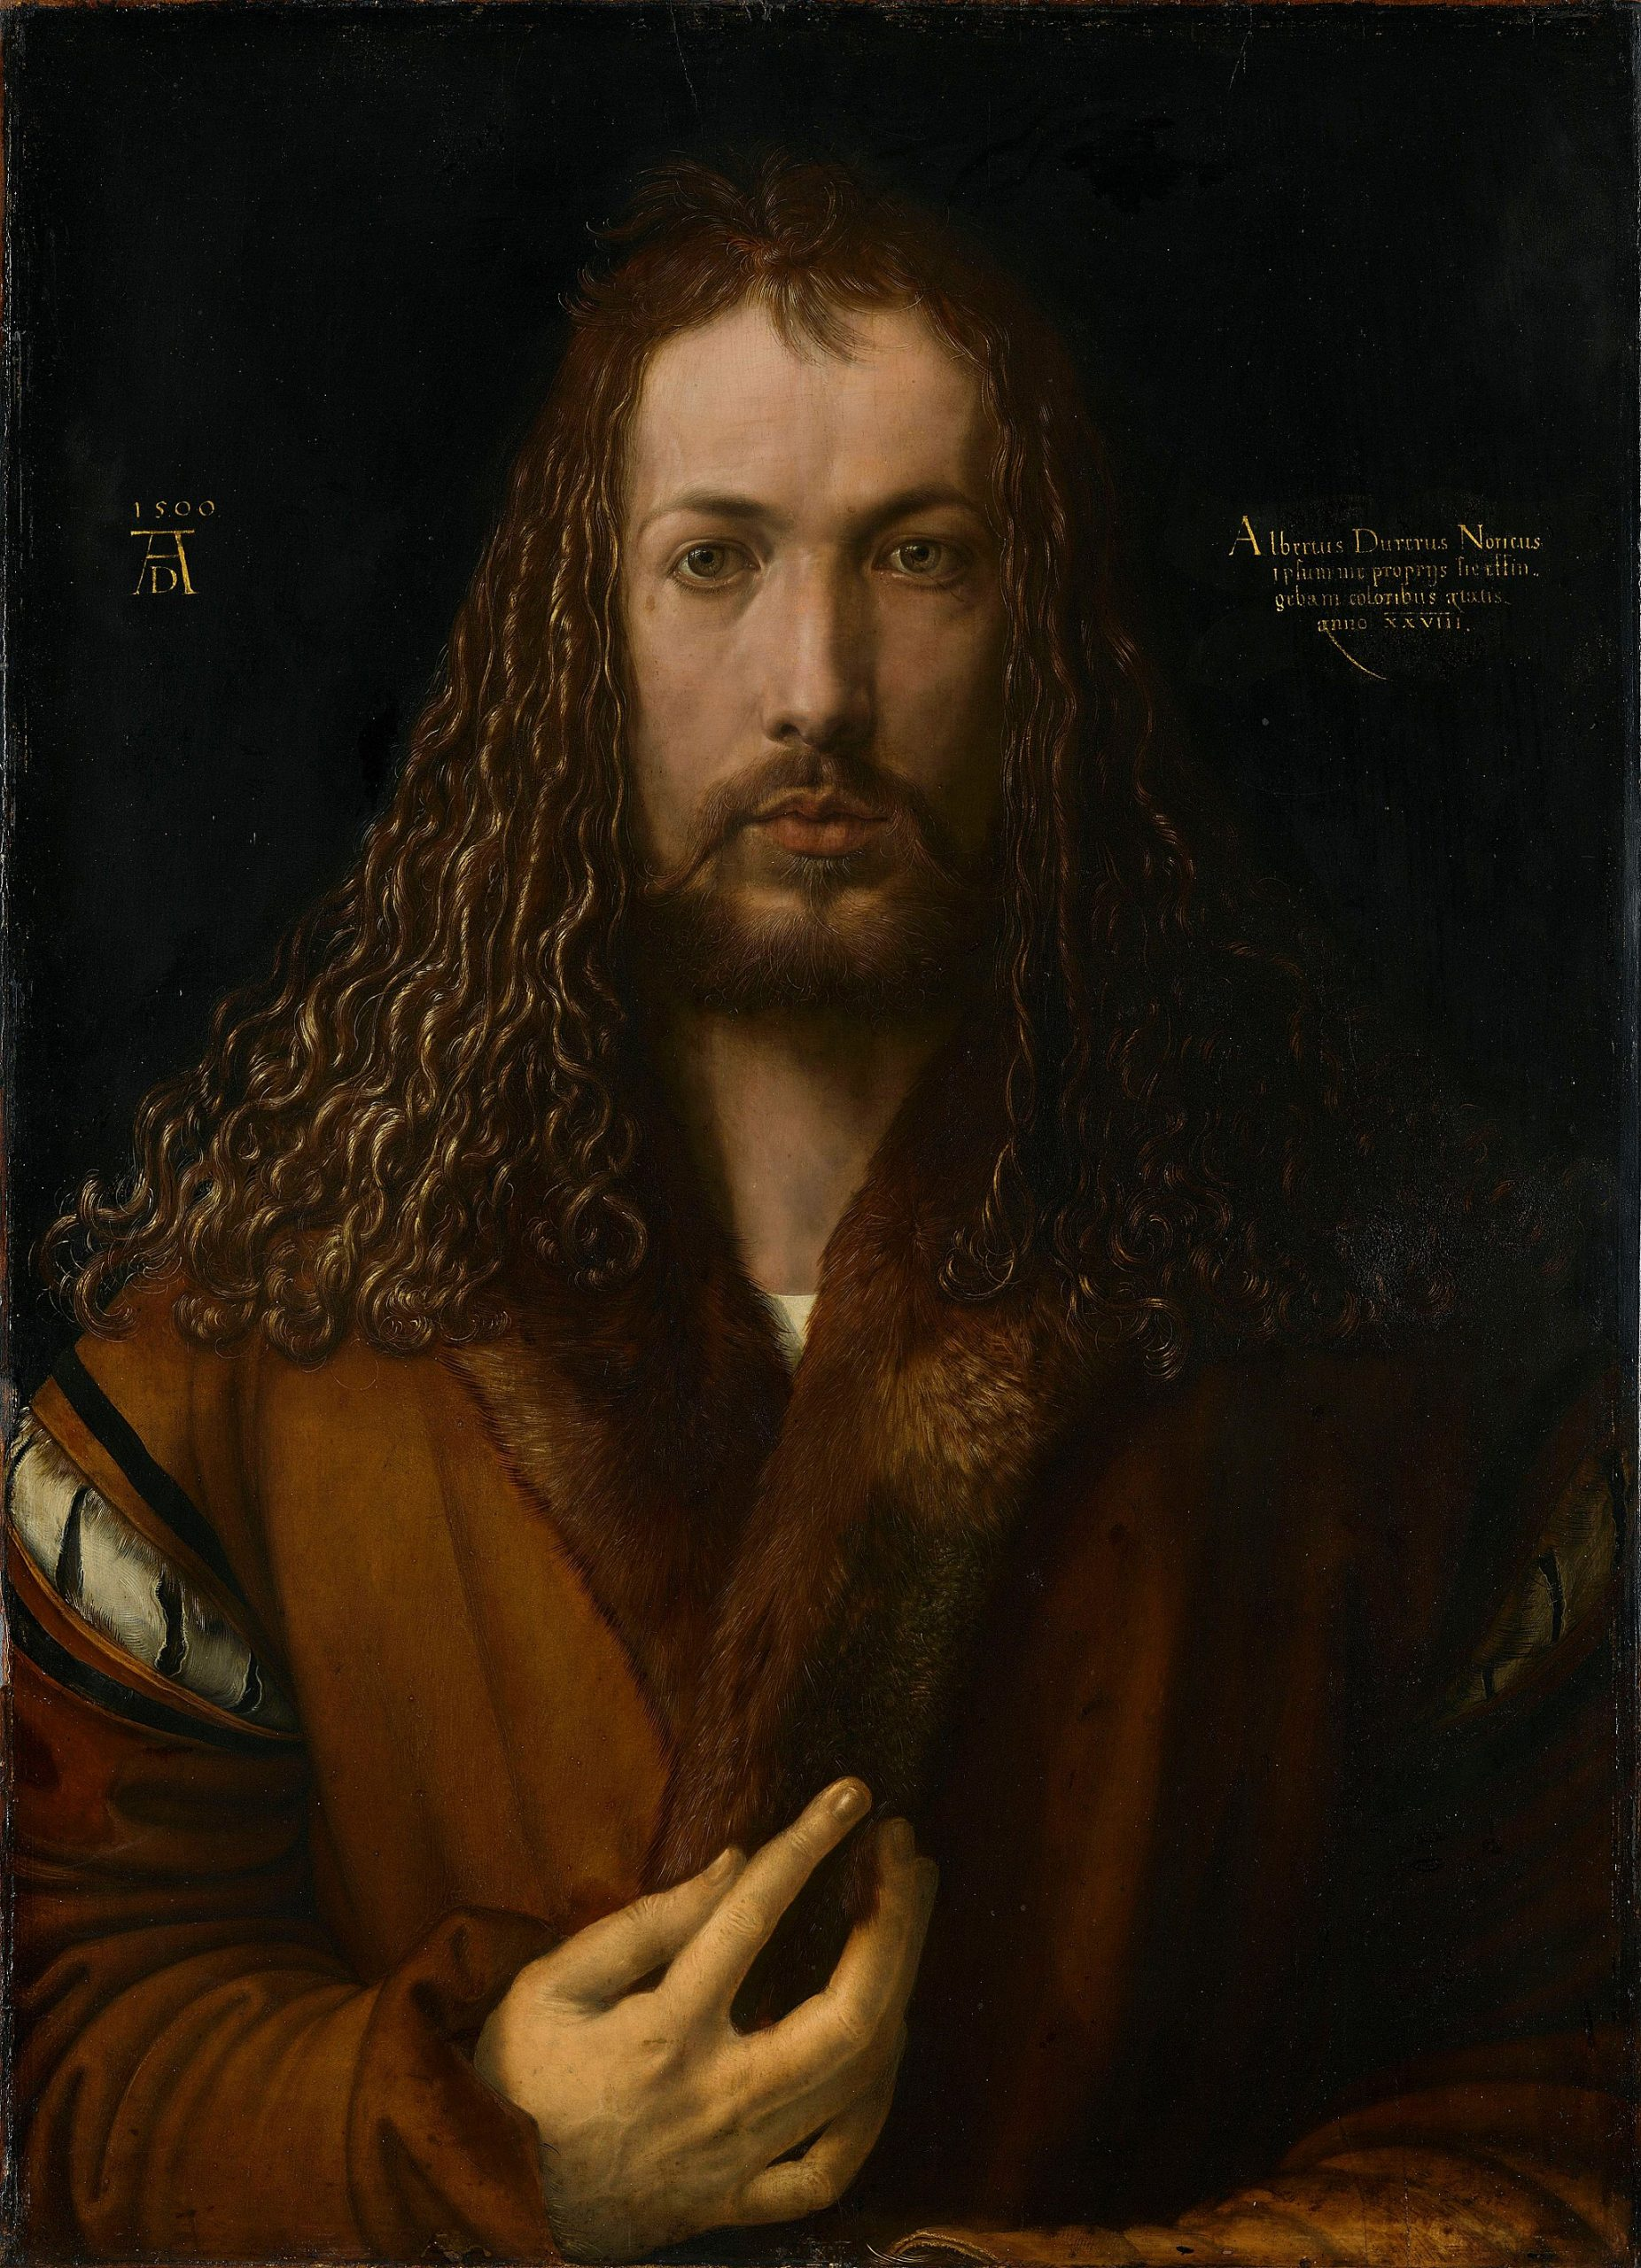 To Celebrate Albrecht Dürer's 550th Birthday, Here Are 3 Fascinating Facts to Change the Way You See His Legendary Self-Portrait | Artnet News